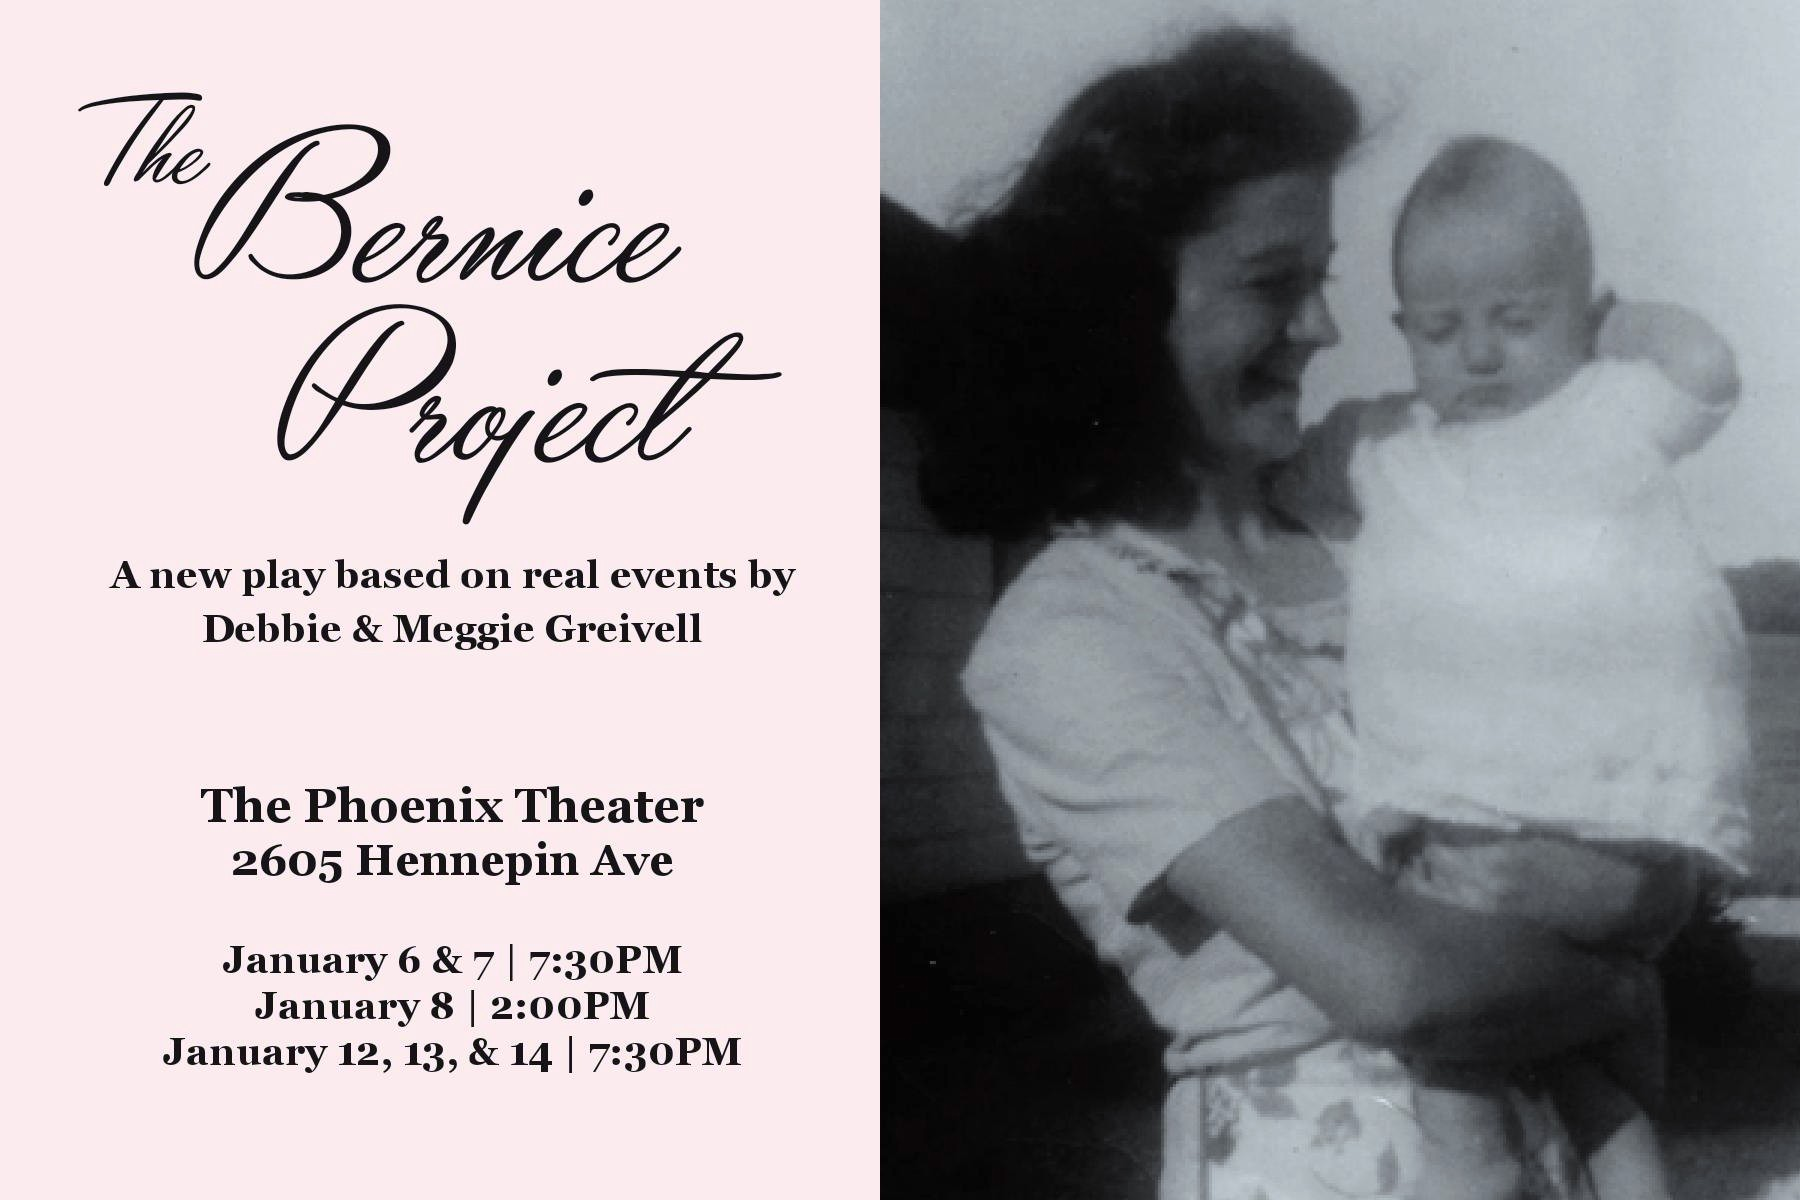 The Bernice Project